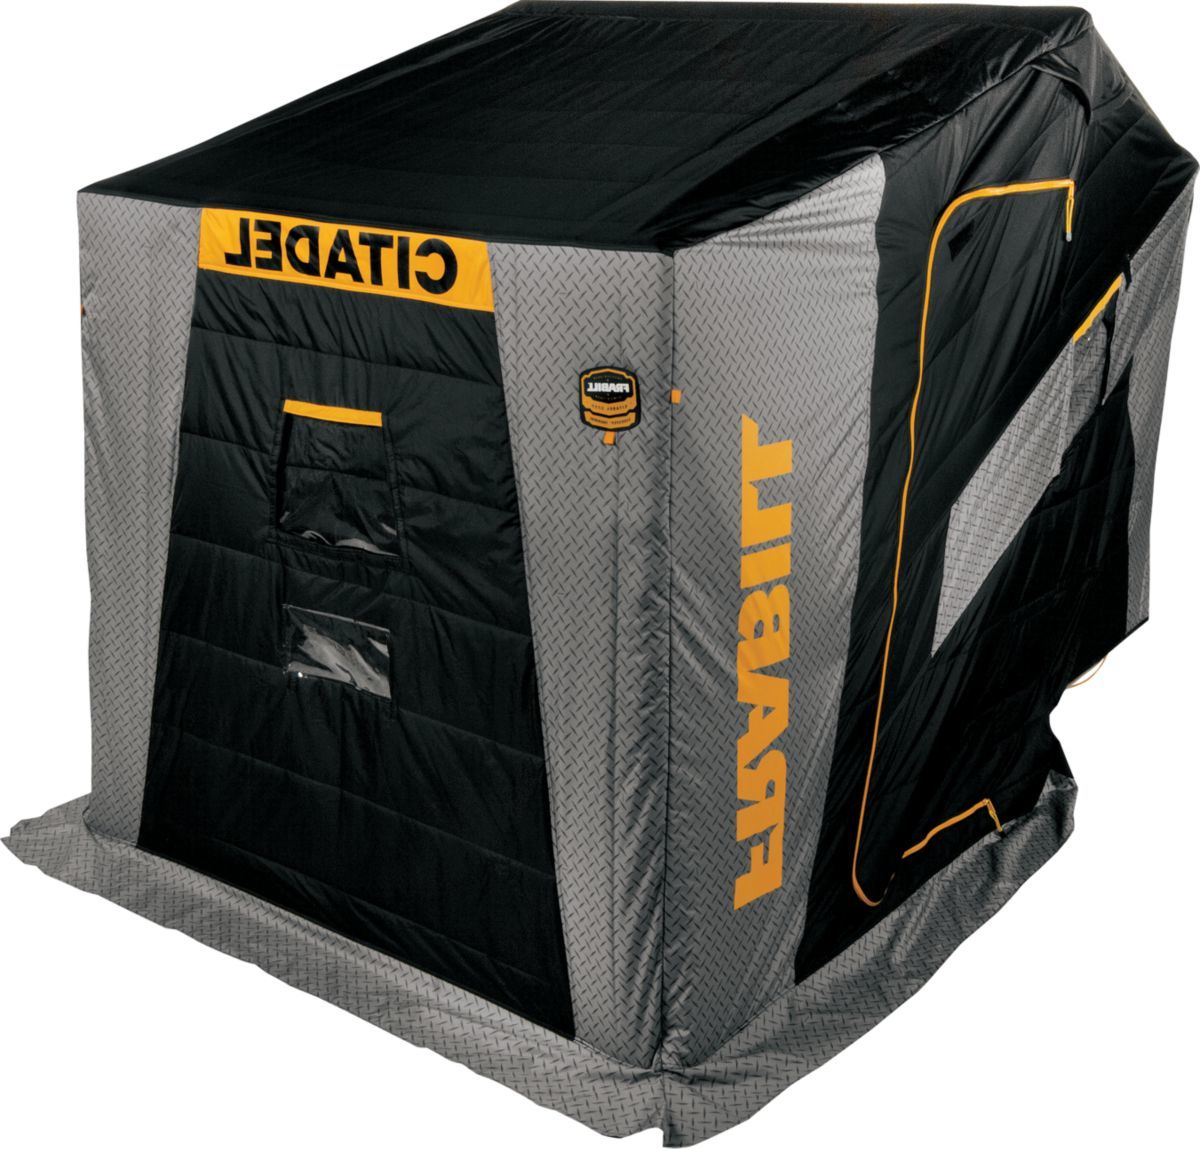 Frabill Citadel 3455 Insulated Flip-Over Ice Shelter